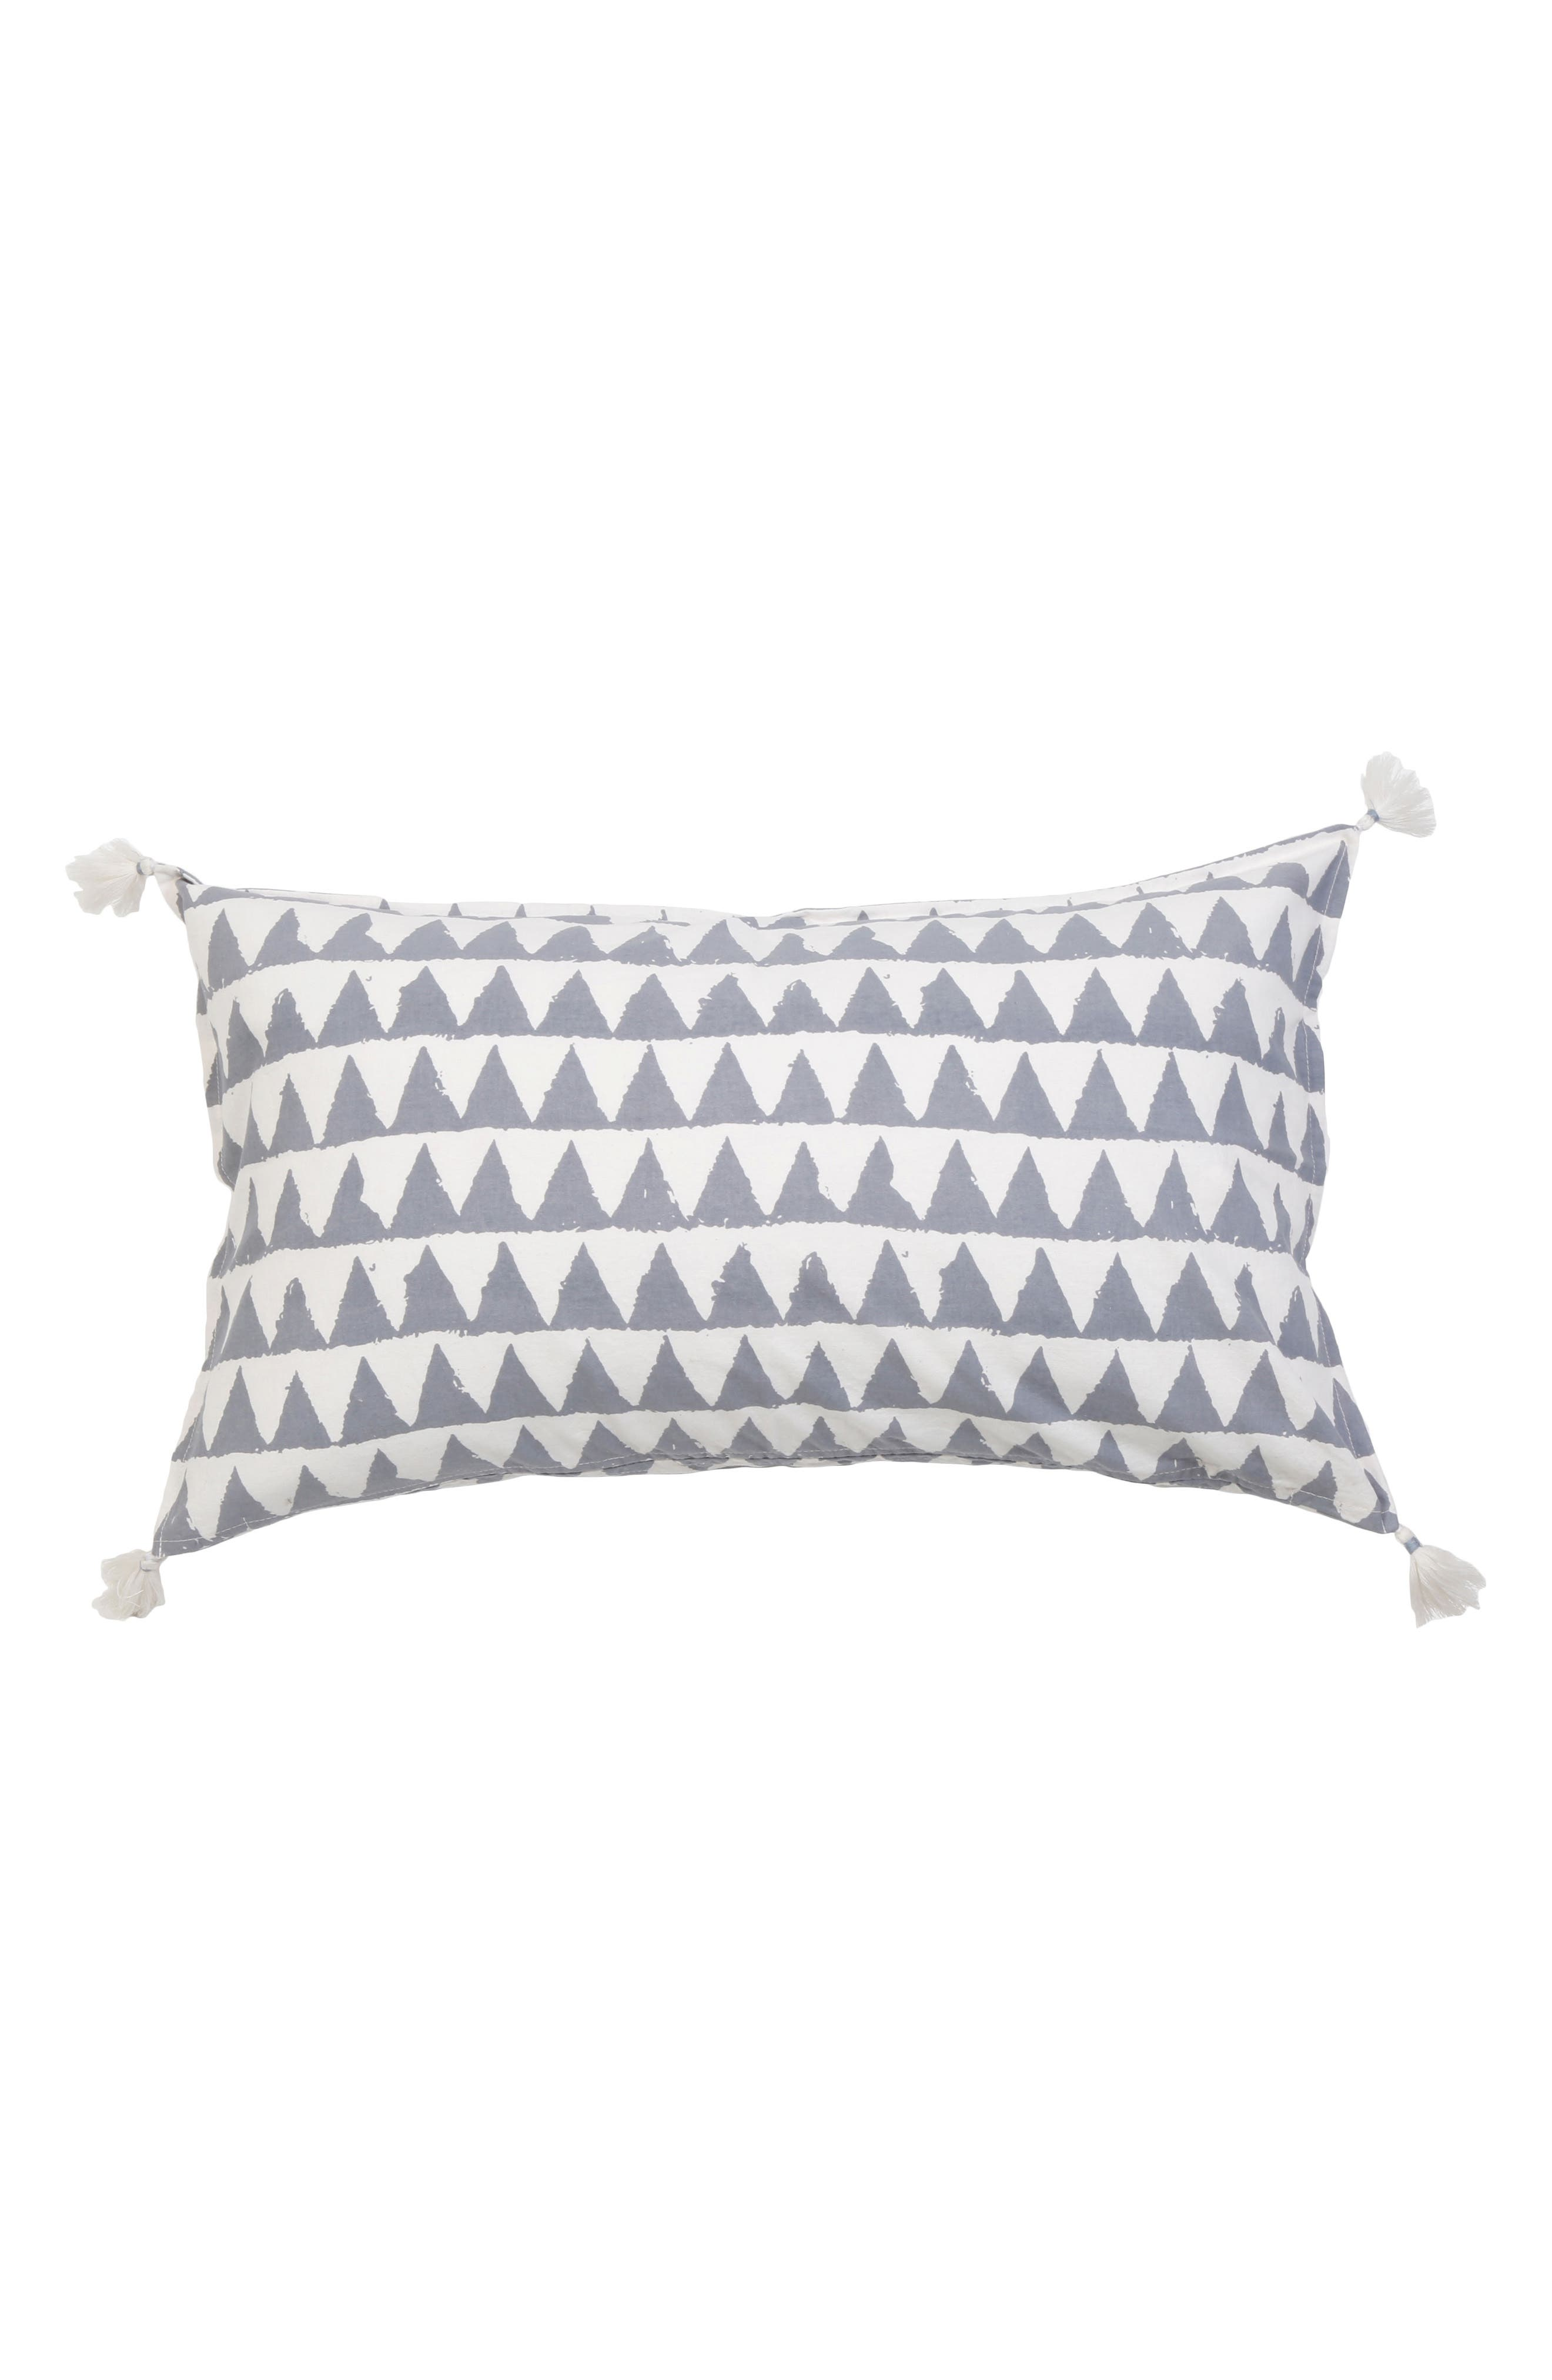 Summit Accent Pillow,                             Main thumbnail 1, color,